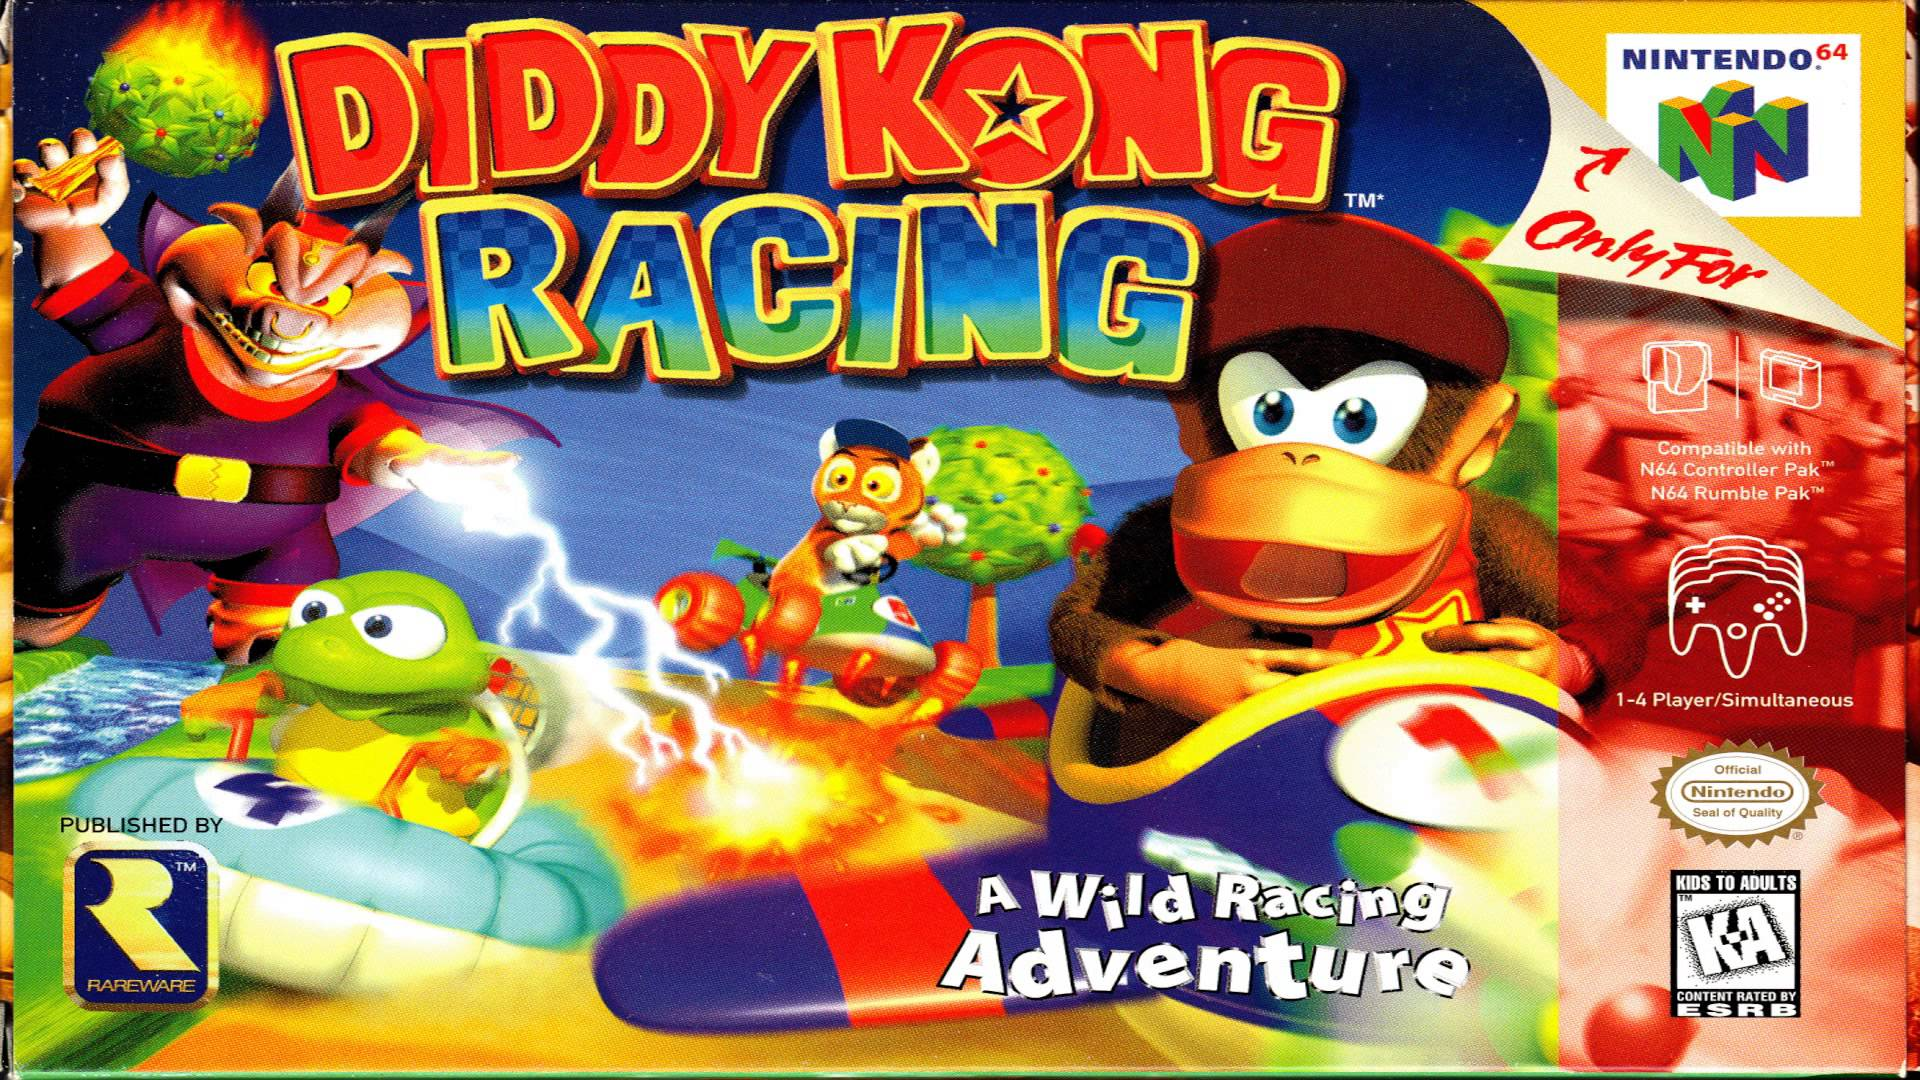 Diddy Kong Racing on N64.